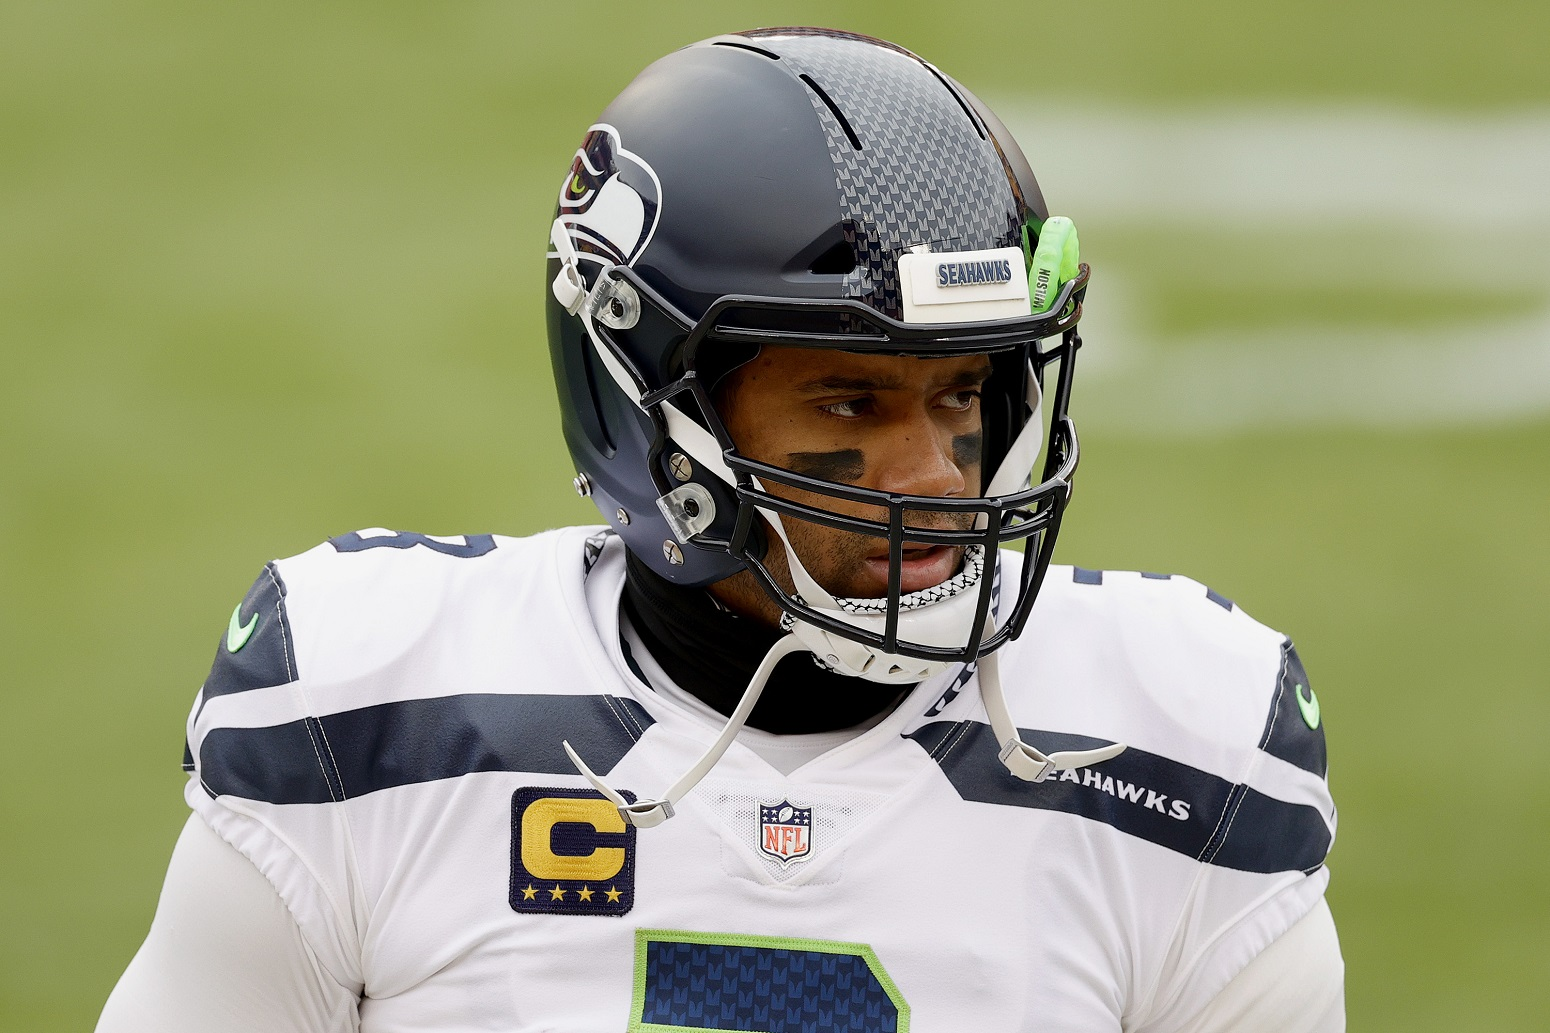 Russell Wilson bully and beat up other kids